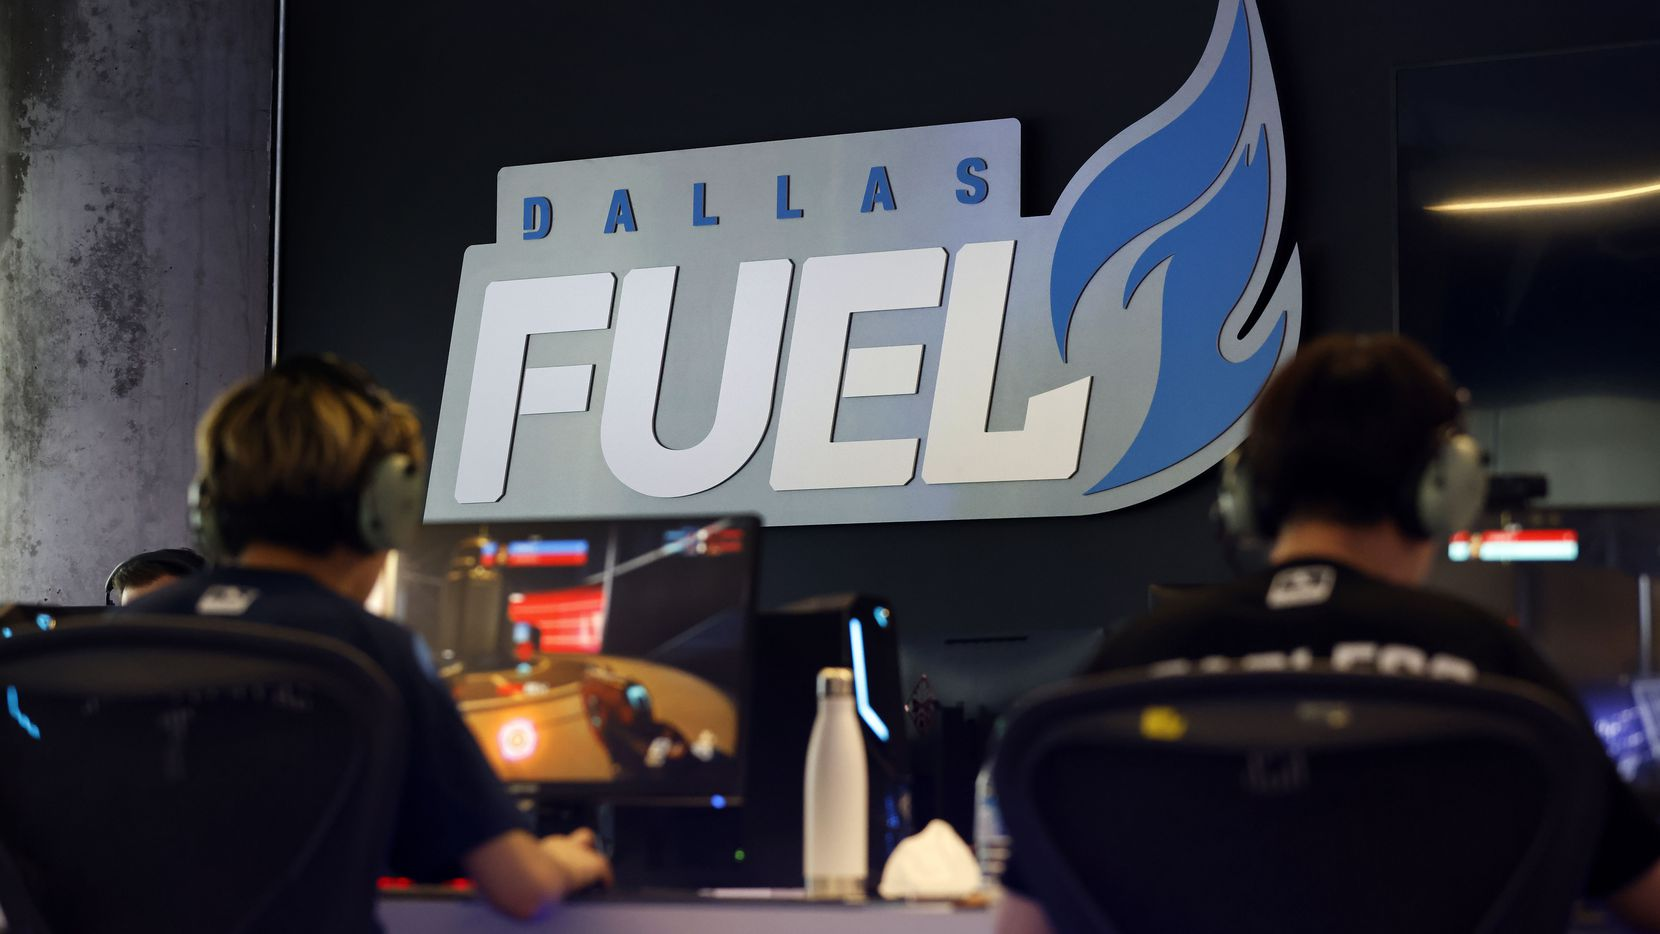 Dallas Fuel Overwatch League players practice ahead of their season opener against Houston at Envy Gaming Headquarters in Dallas, Monday, March 29, 2021.